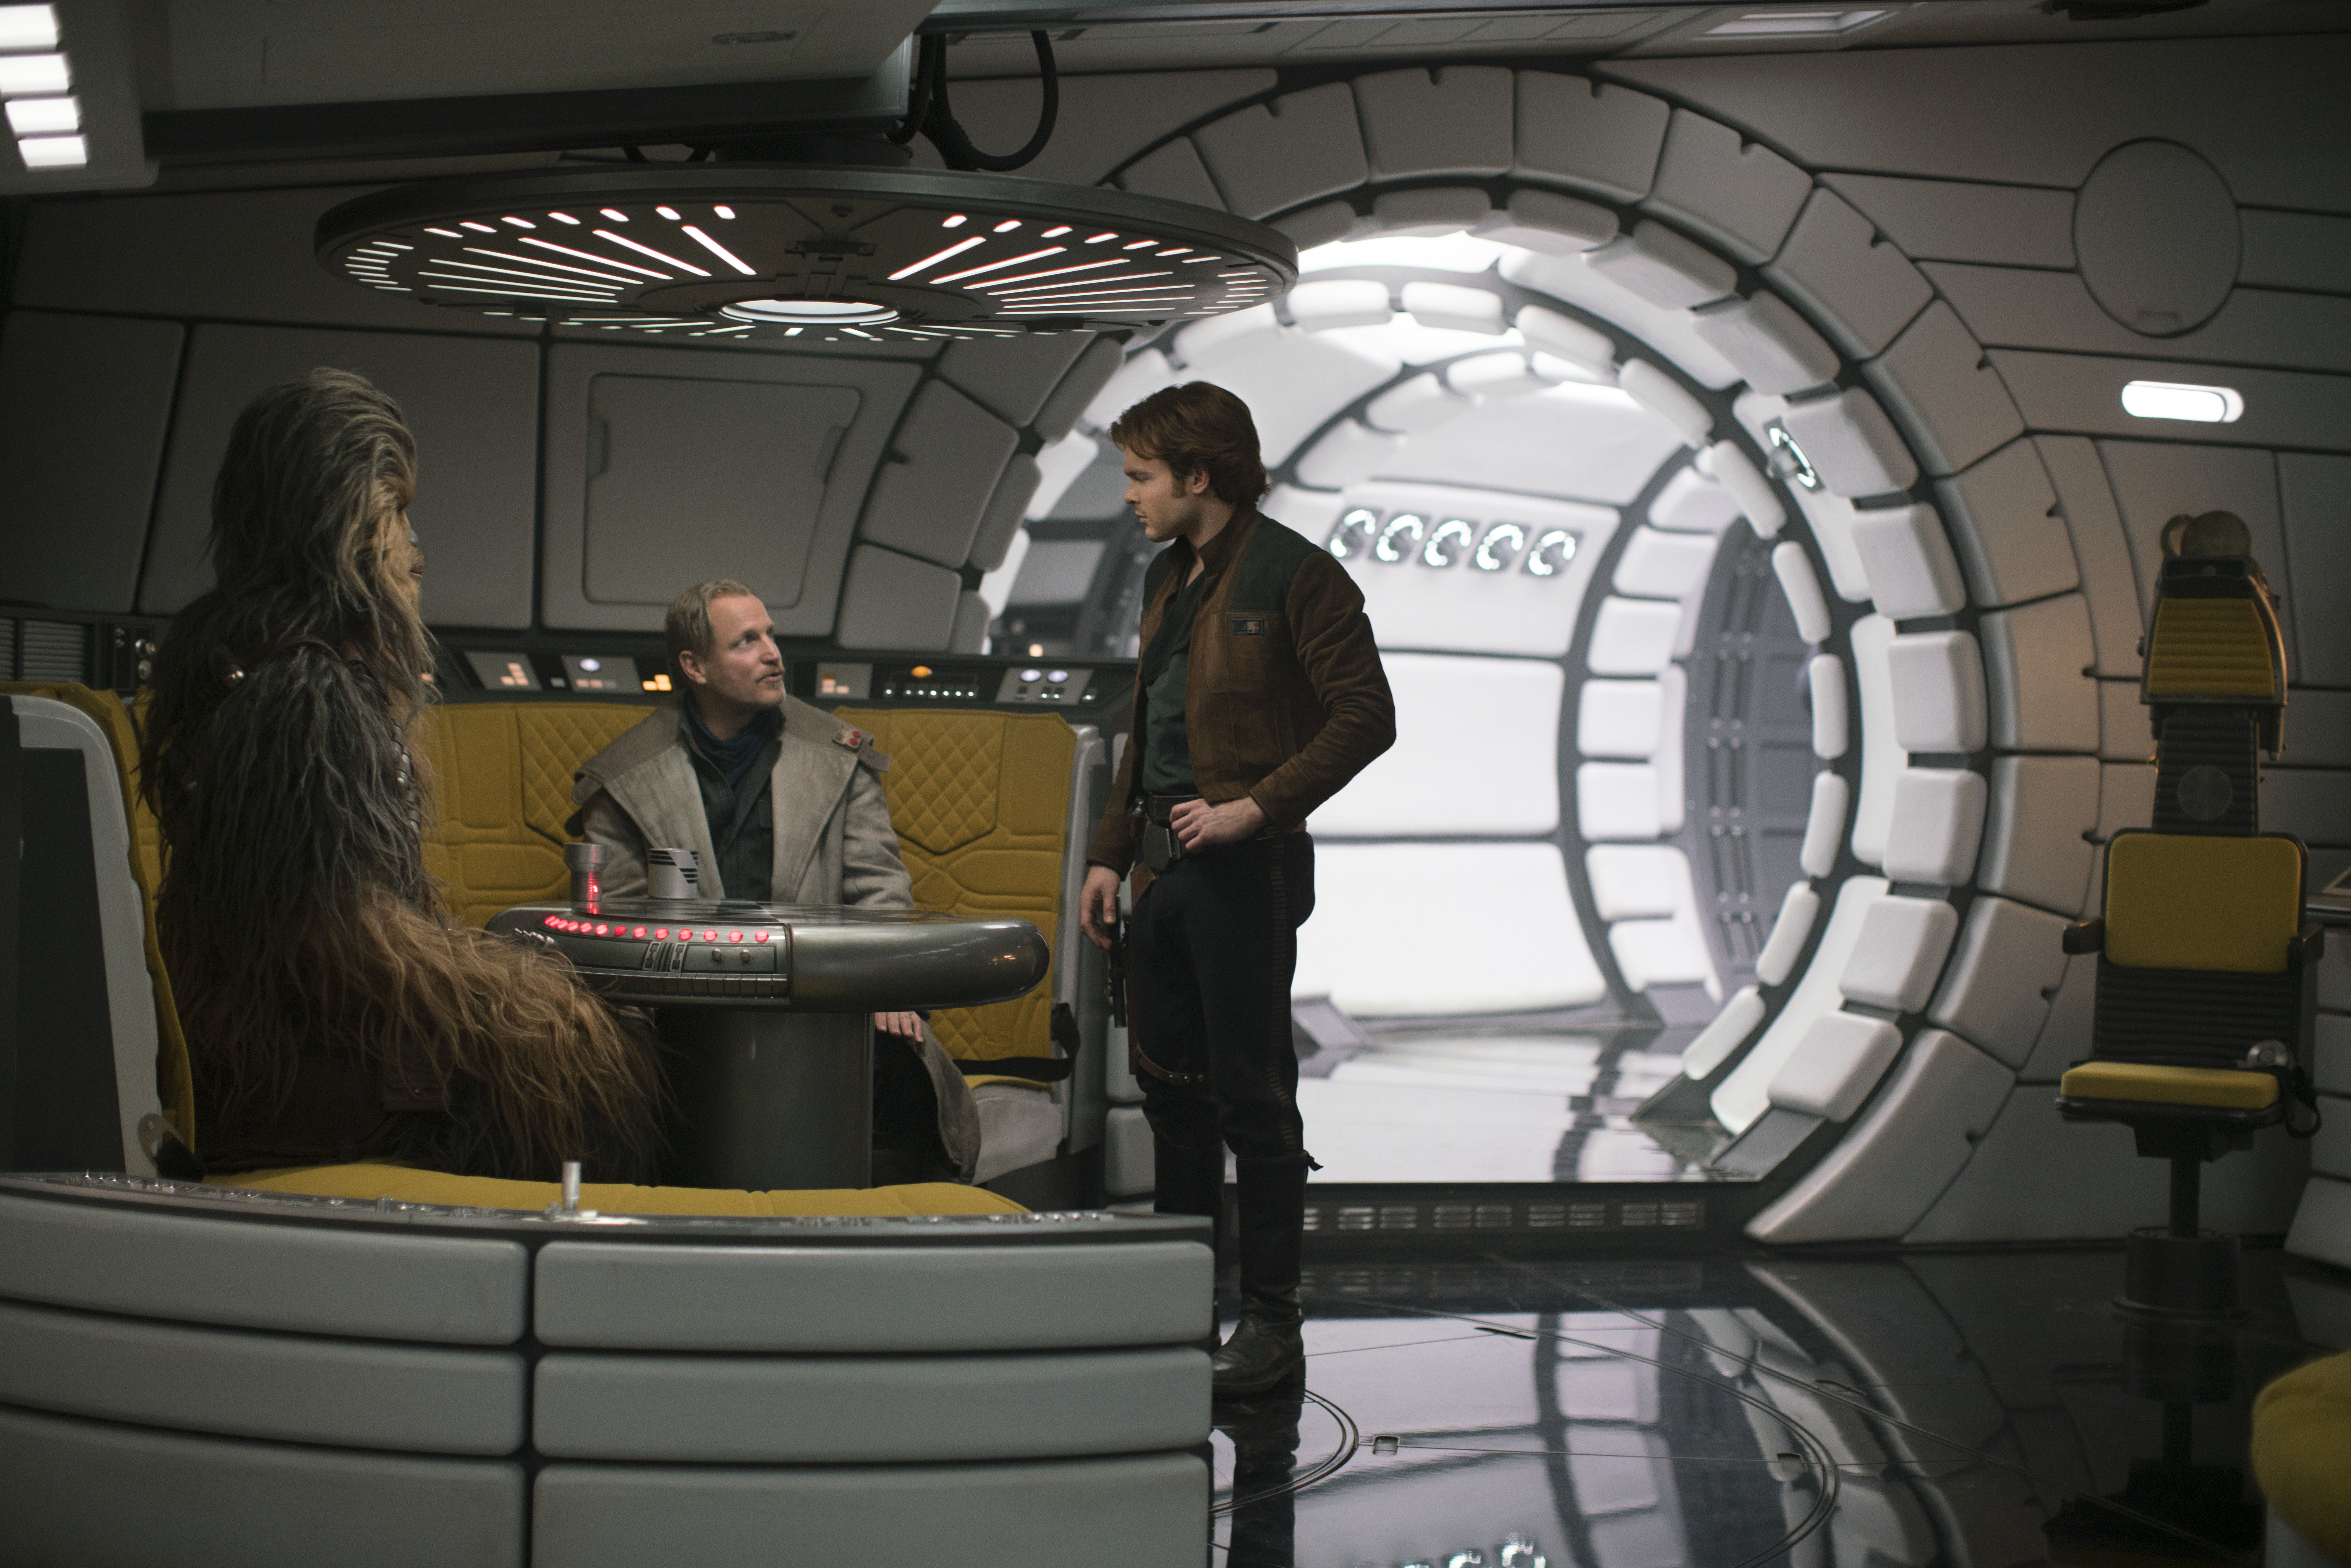 Solo A Star Wars Story 8k Ultra Hd Wallpaper Background Image 7952x5304 Id 902645 Wallpaper Abyss